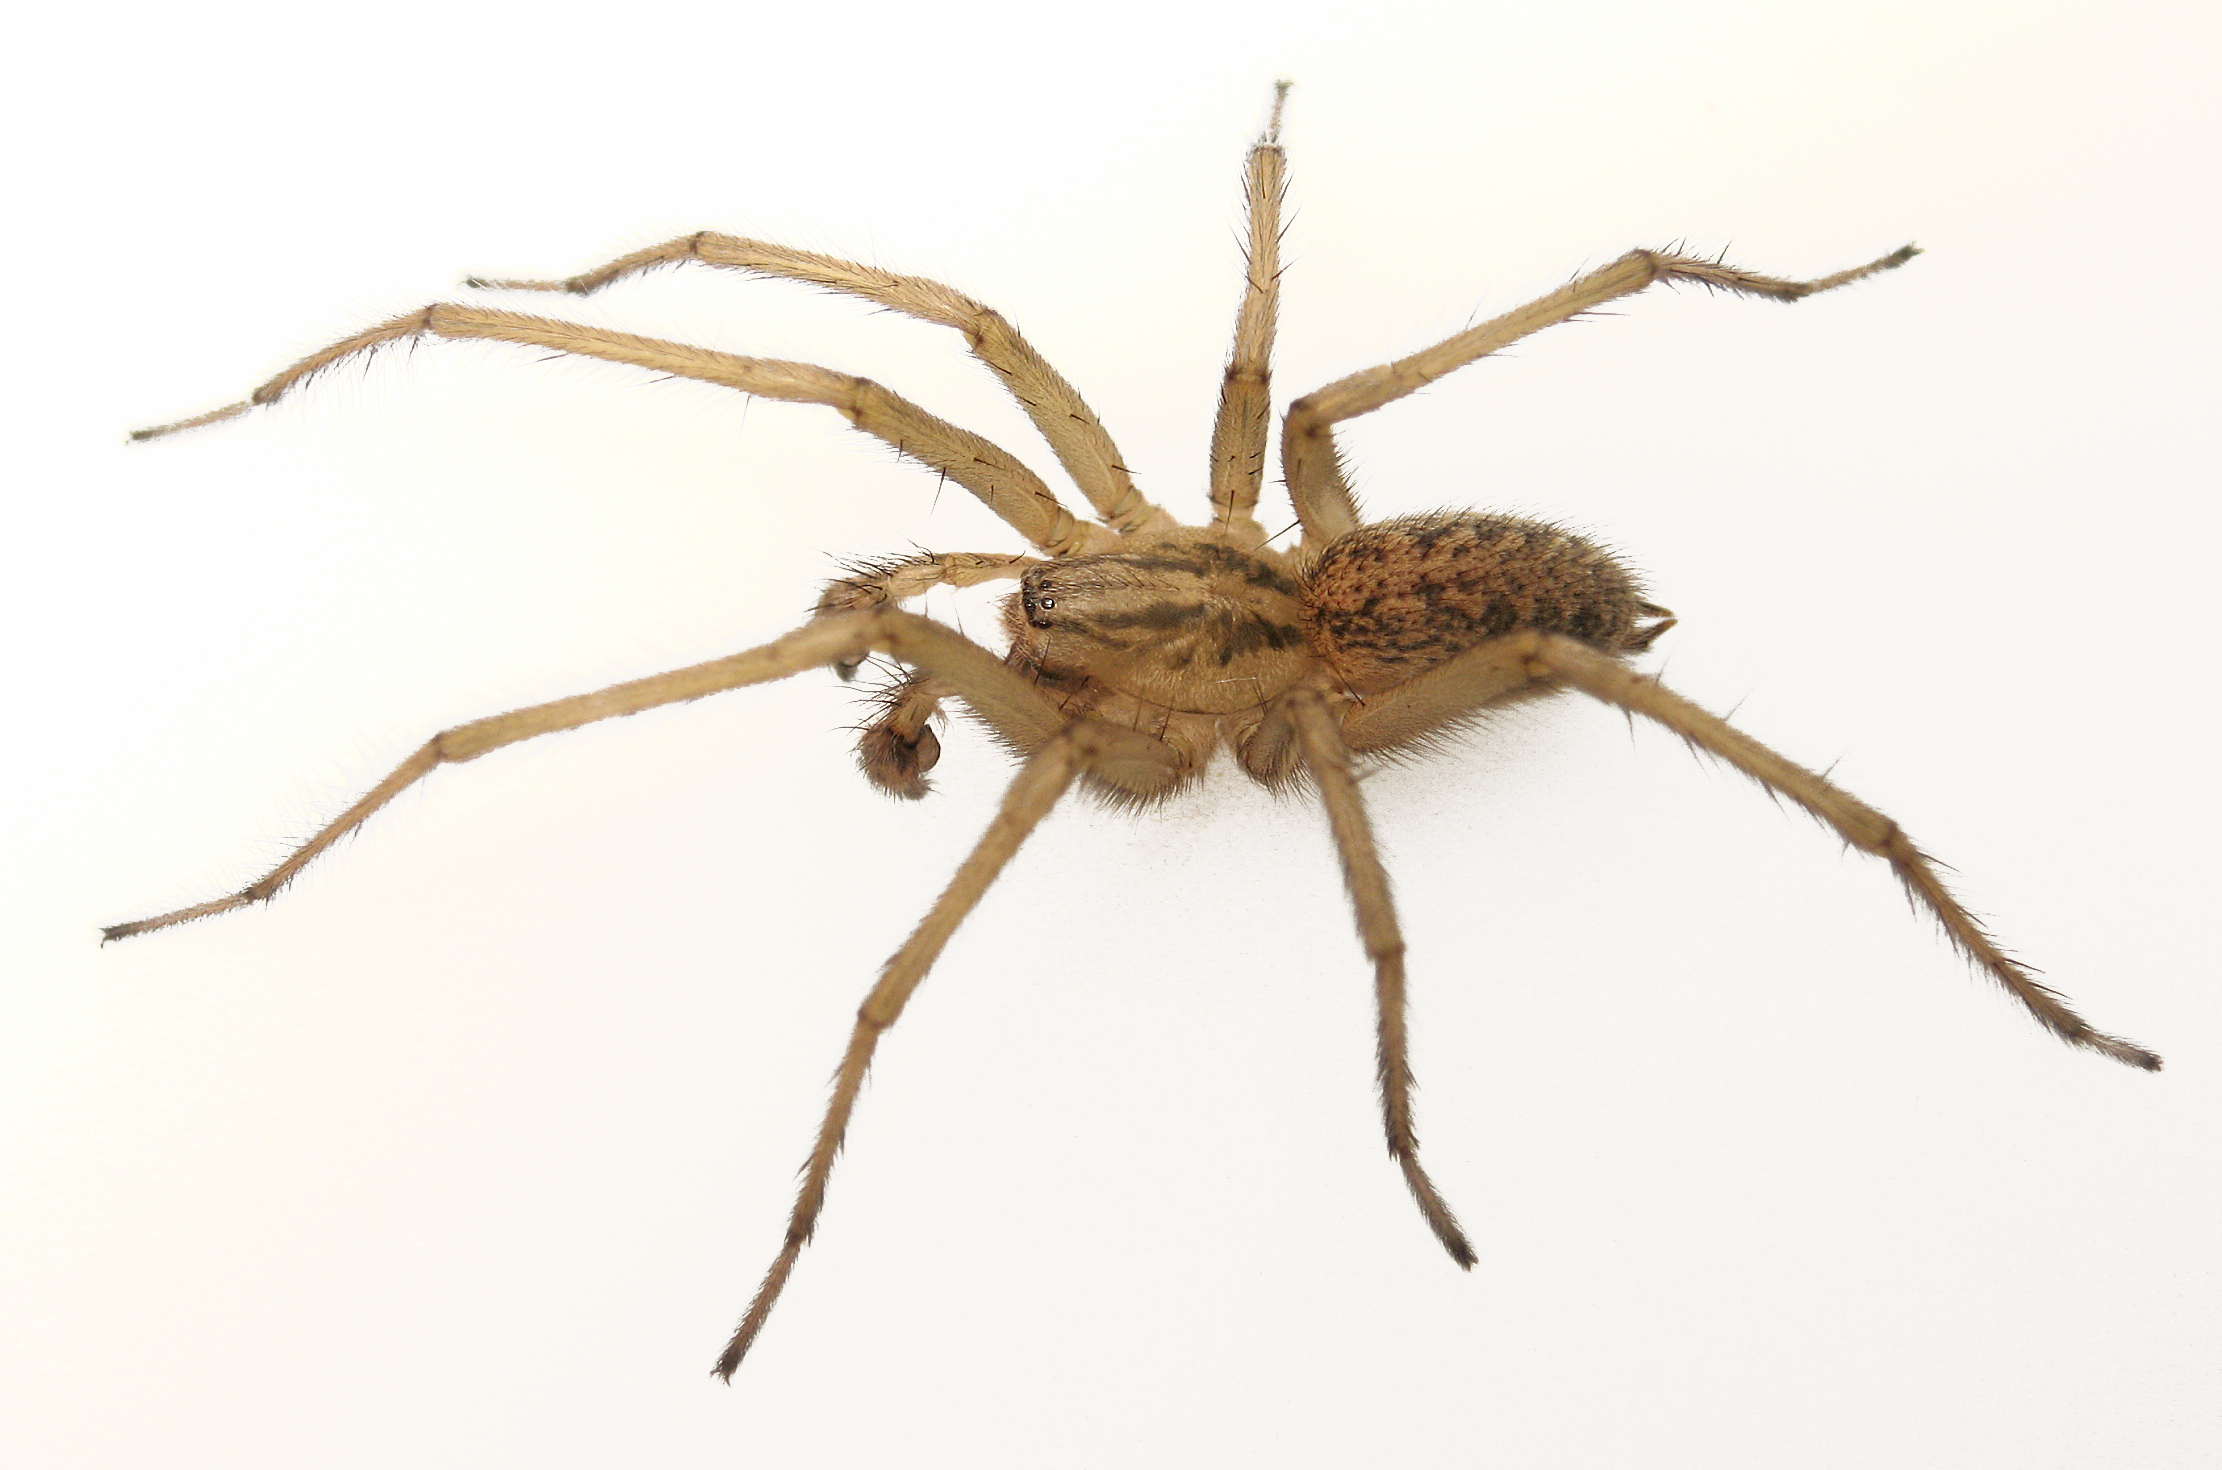 Spider Killer Insecticide Spray Repellent Traps Poison